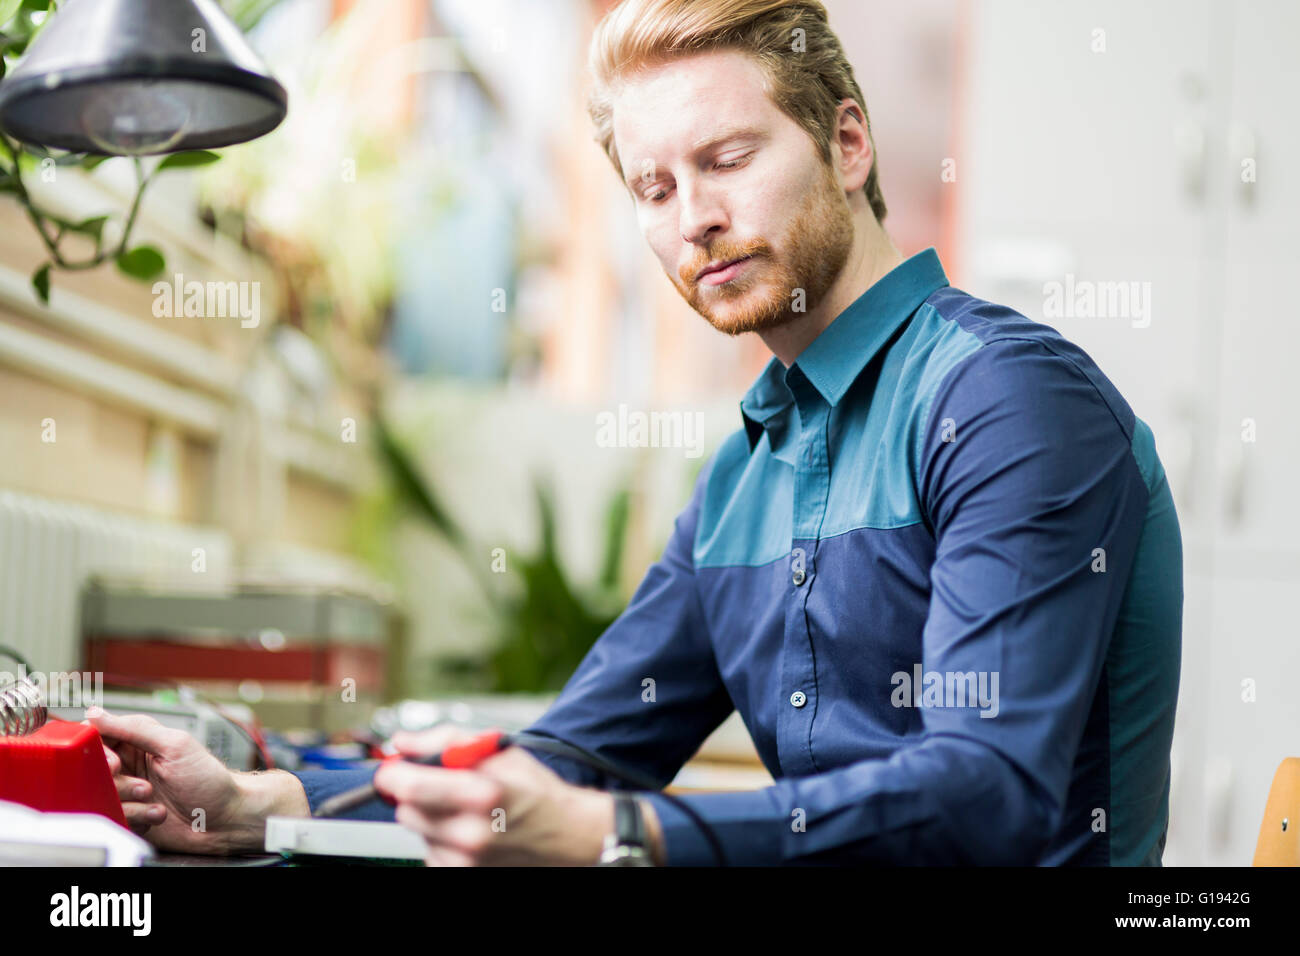 Young handsome man soldering a circuit board and working on fixing hardware - Stock Image